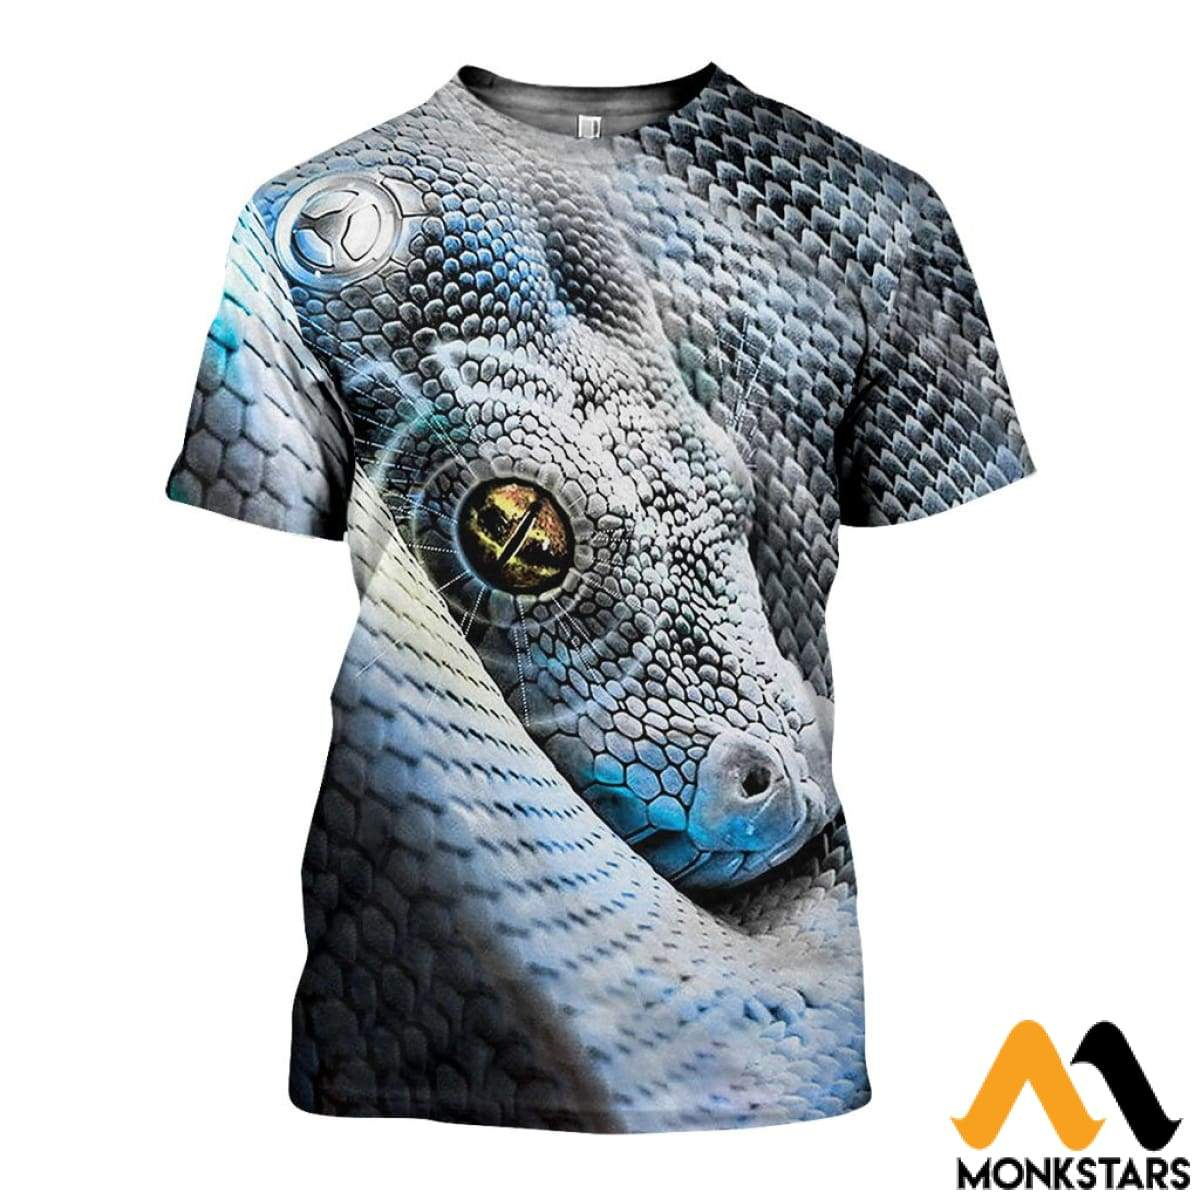 f703bf3e46bd 3D All Over Printed Snake Art Shirts And Shorts T-Shirt   Xs Clothes